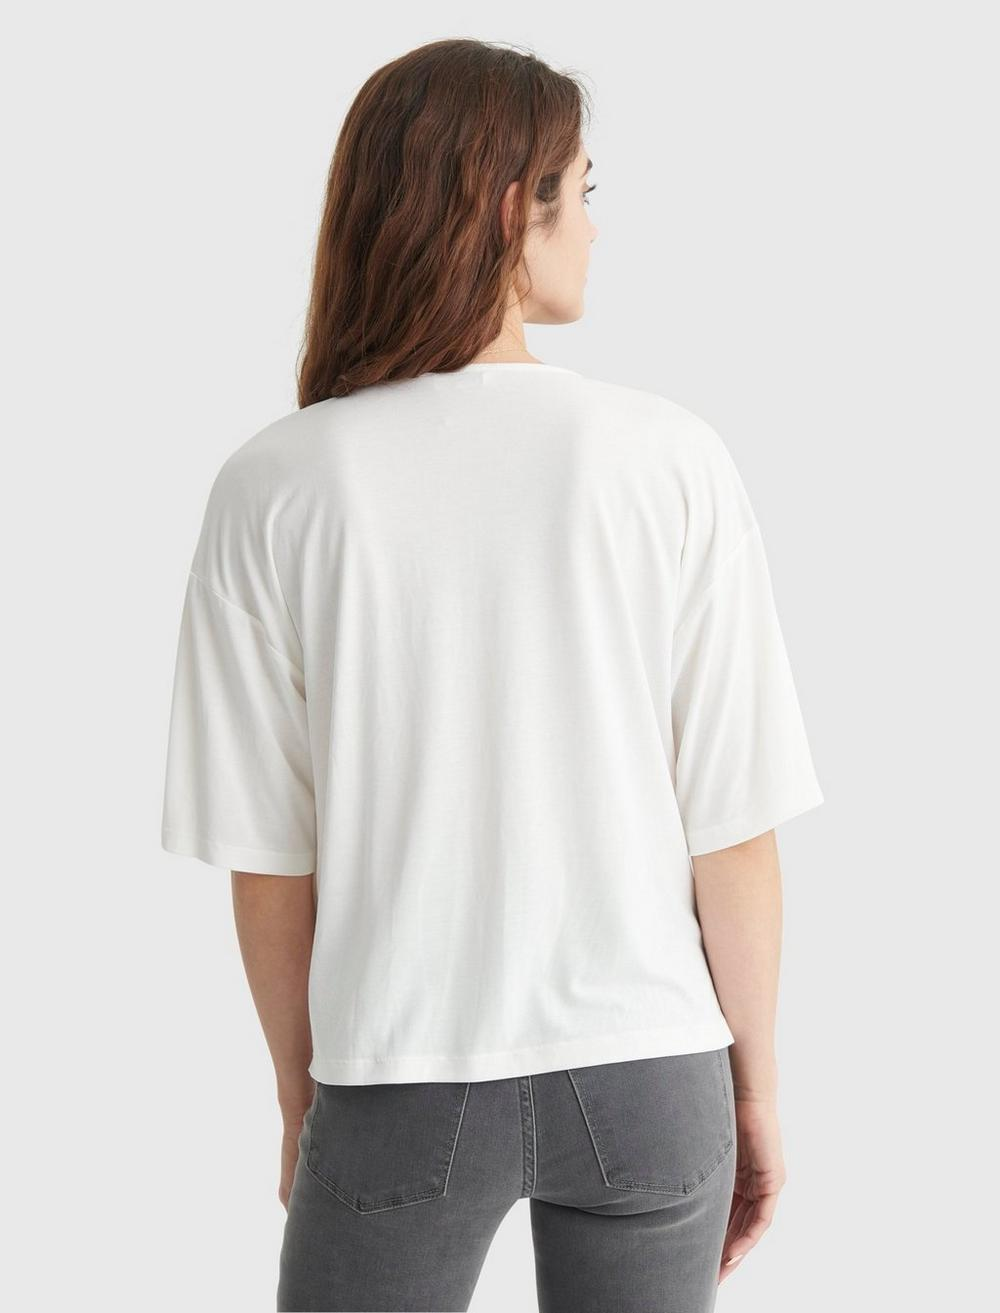 RELAXED-FIT V-NECK KNIT TOP, image 5